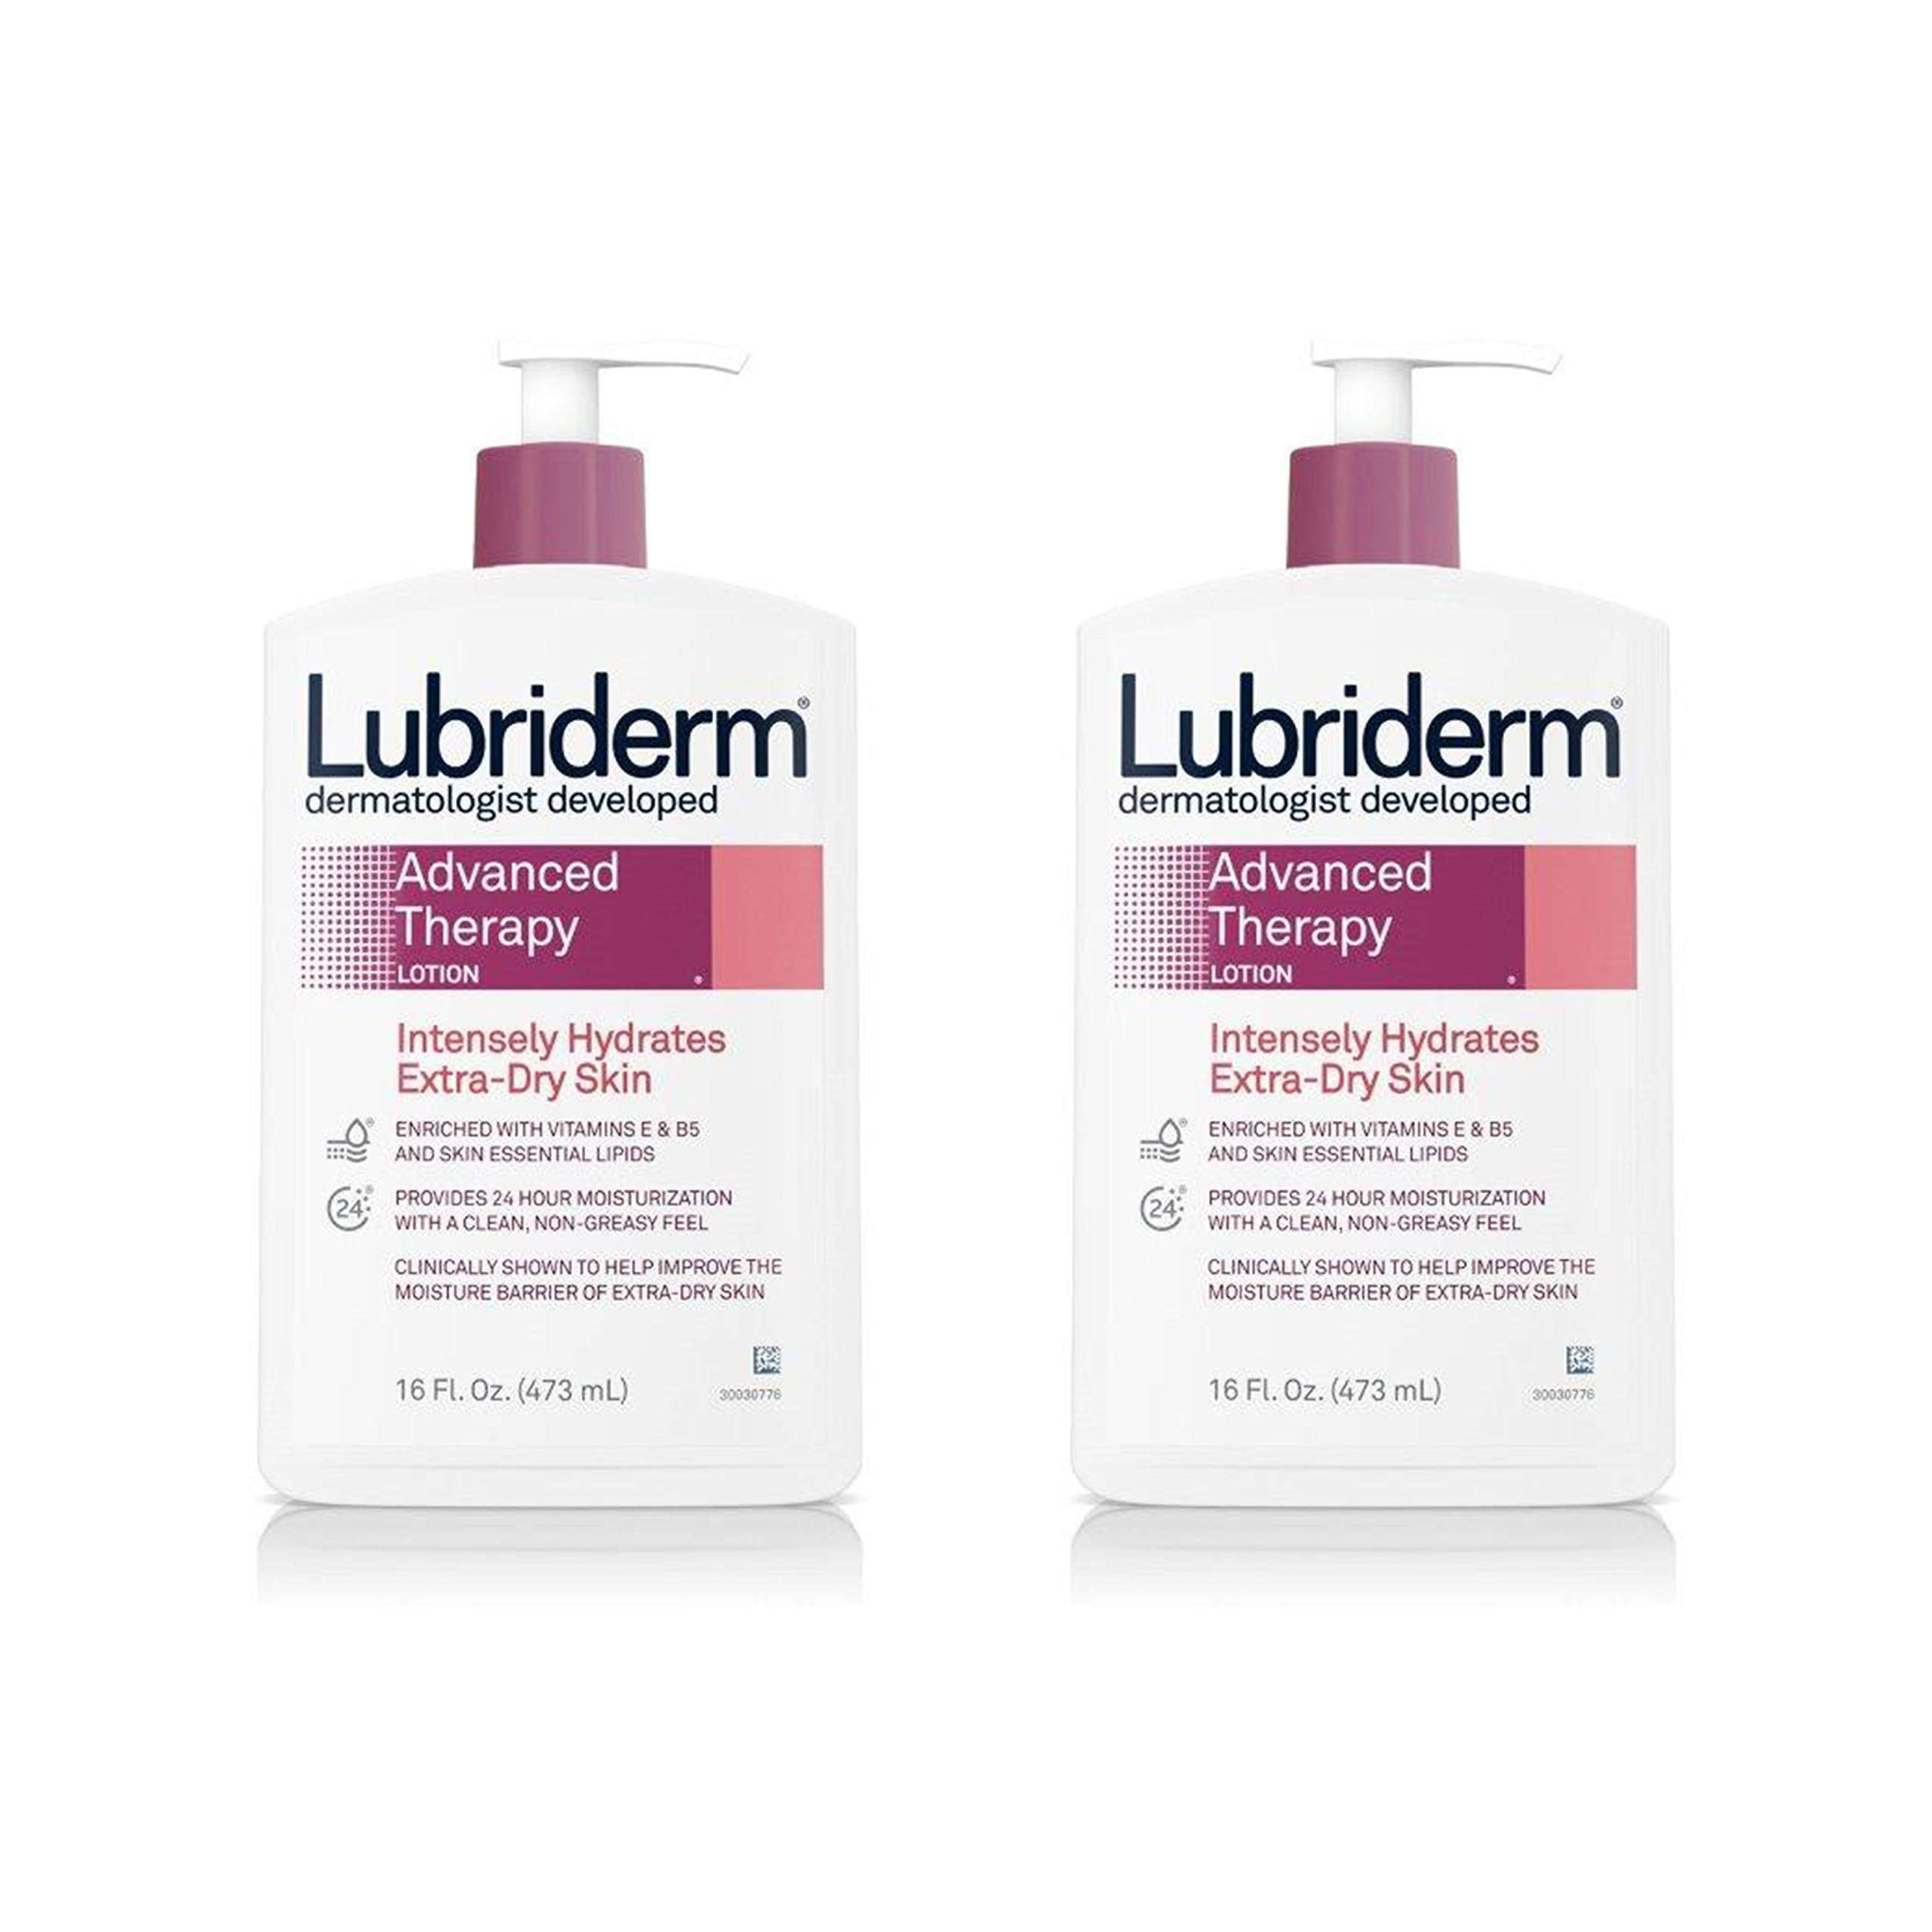 Lubriderm Advanced Therapy Moisturizing Lotion with Vitamins E and B5, Deep Hydration for Extra Dry Skin, Non-Greasy Formula, 16 Fl Oz, Pack of 2 by Lubriderm